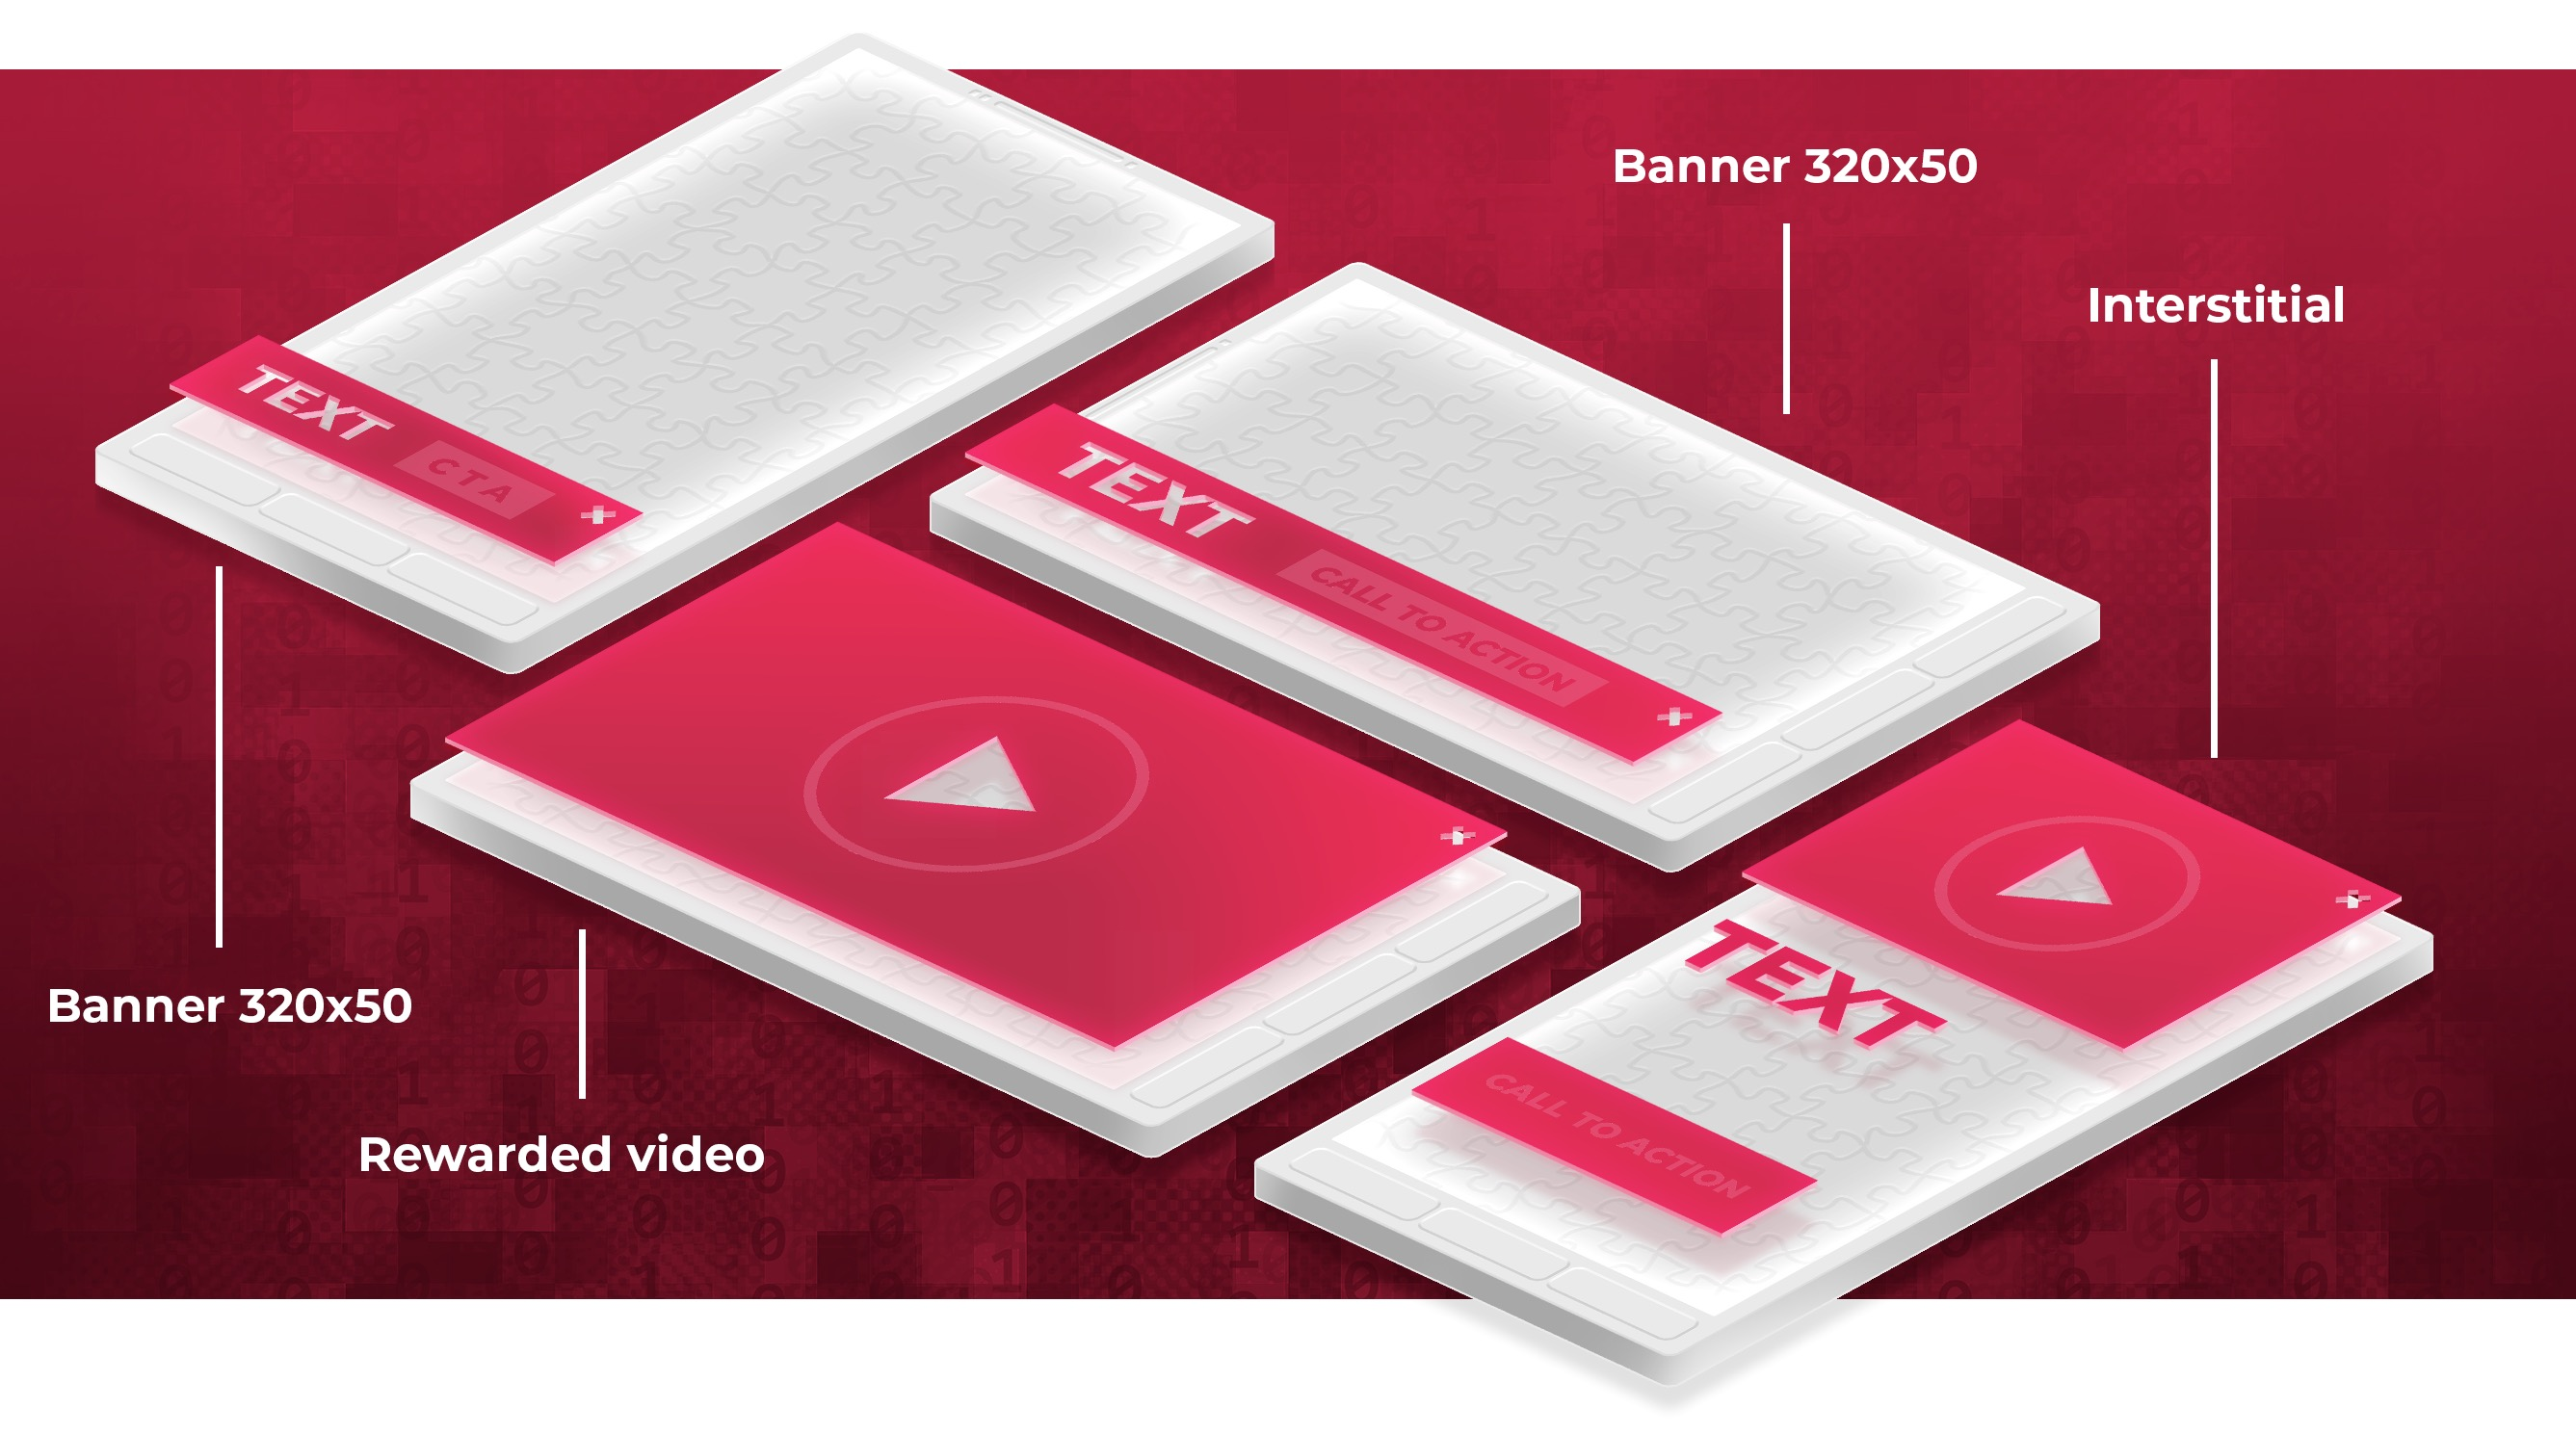 banners, interstitial, rewarded video images